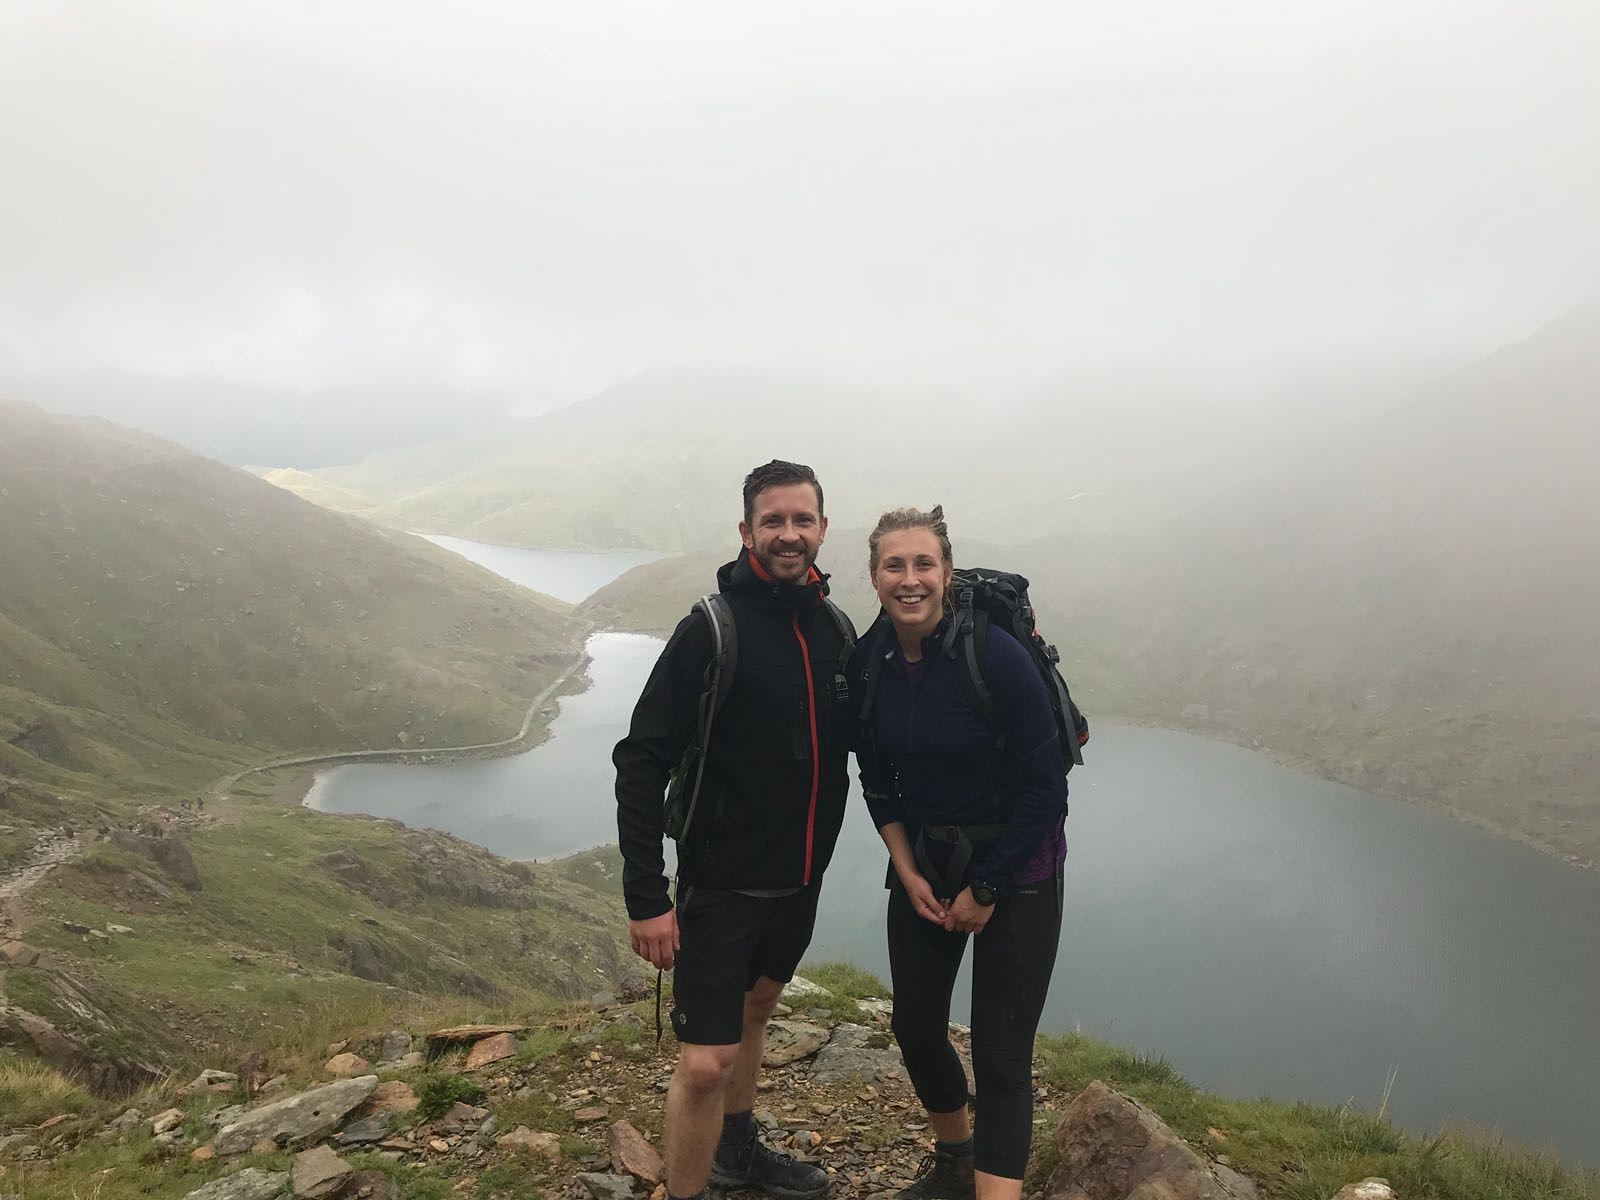 Naomi Macphail and friend on the Three Peaks Challenge